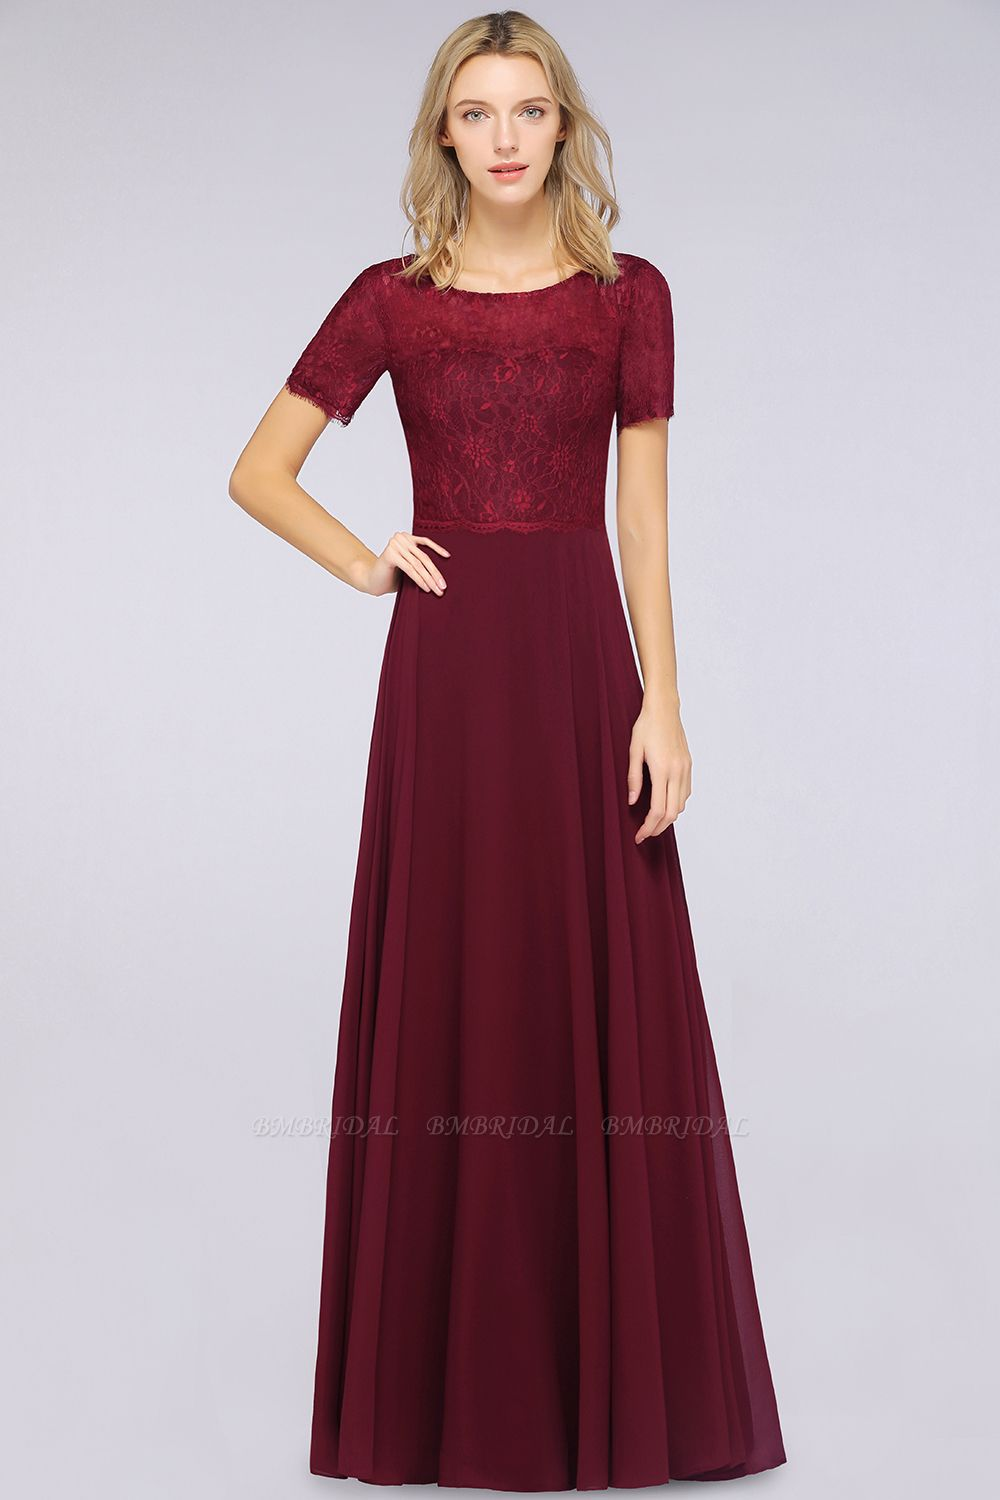 Chic Lace Long Burgundy Backless Bridesmaid Dress With Short-Sleeves